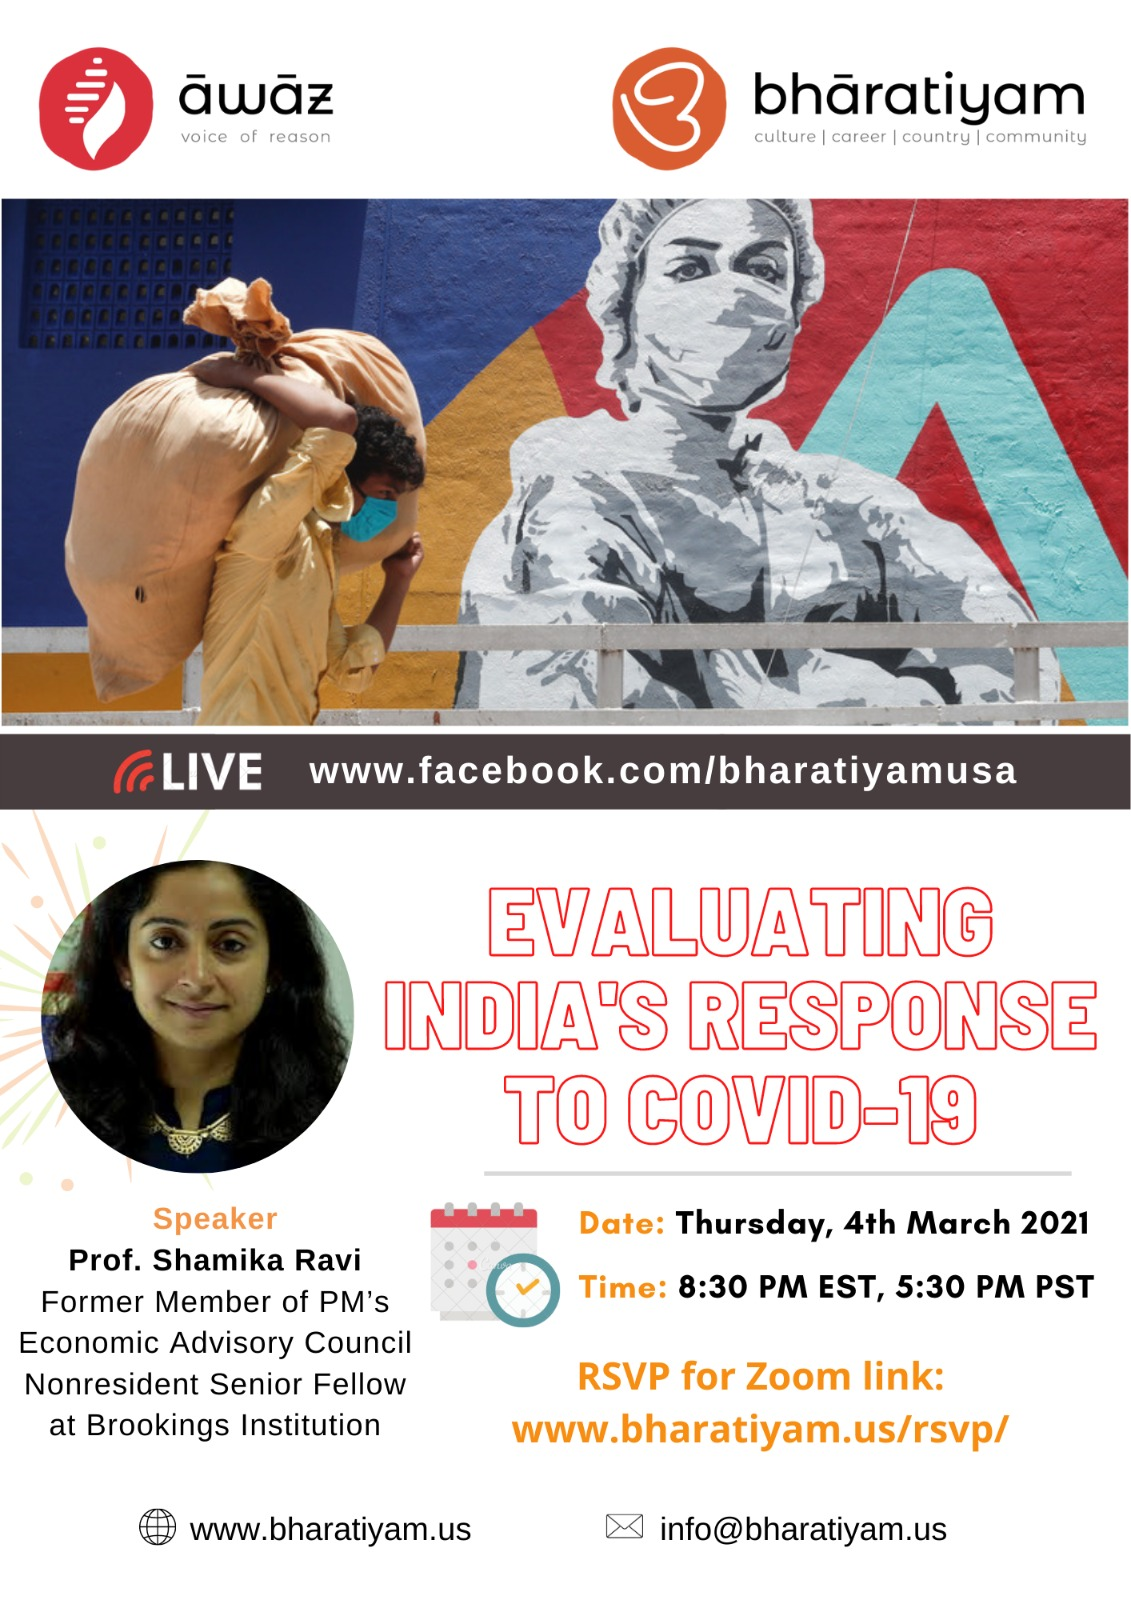 Evaluating India's Response to Covid-19 - Prof. Shamika Ravi